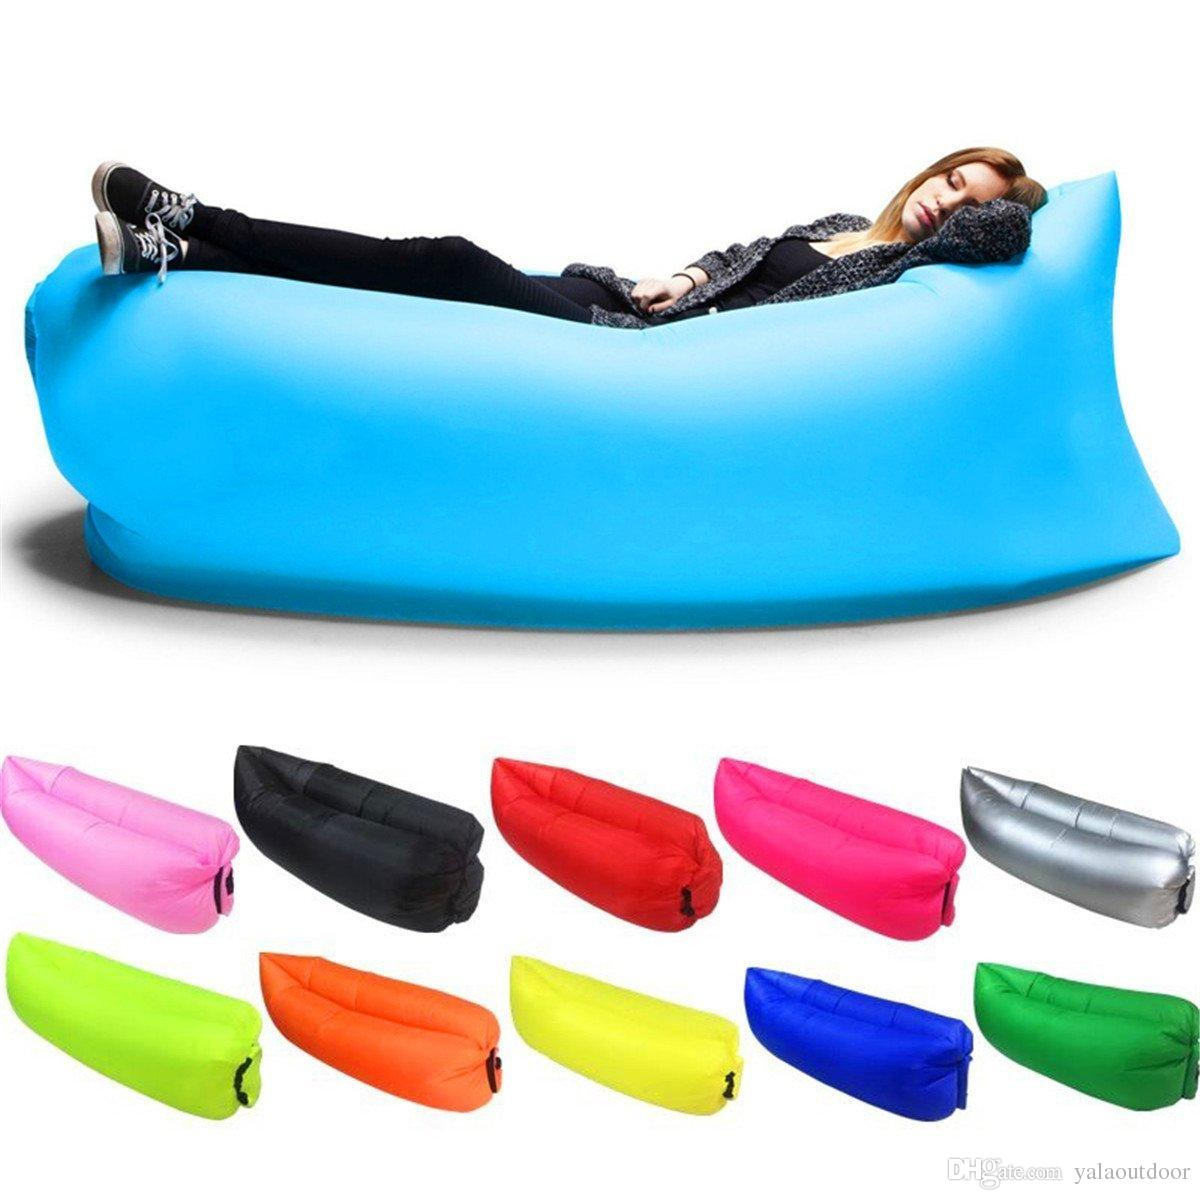 Inflatable Lounger Outdoor Air Sofa Indoor Inflatable Chair With Carry Bag  Nylon Fabric Down Sleeping Bags Uk Camping Equipment Sale From Yalaoutdoor,  ... - Inflatable Lounger Outdoor Air Sofa Indoor Inflatable Chair With